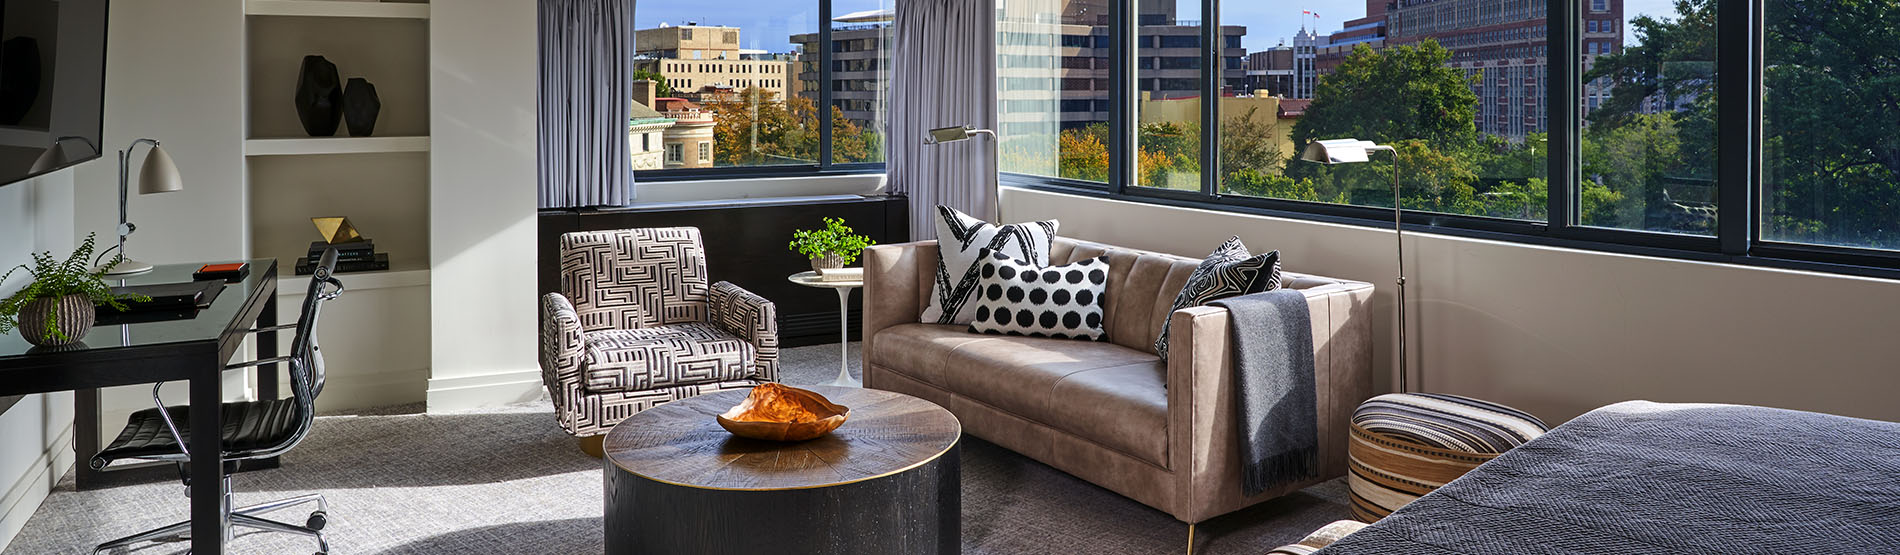 Suite living room with large windows and view of city